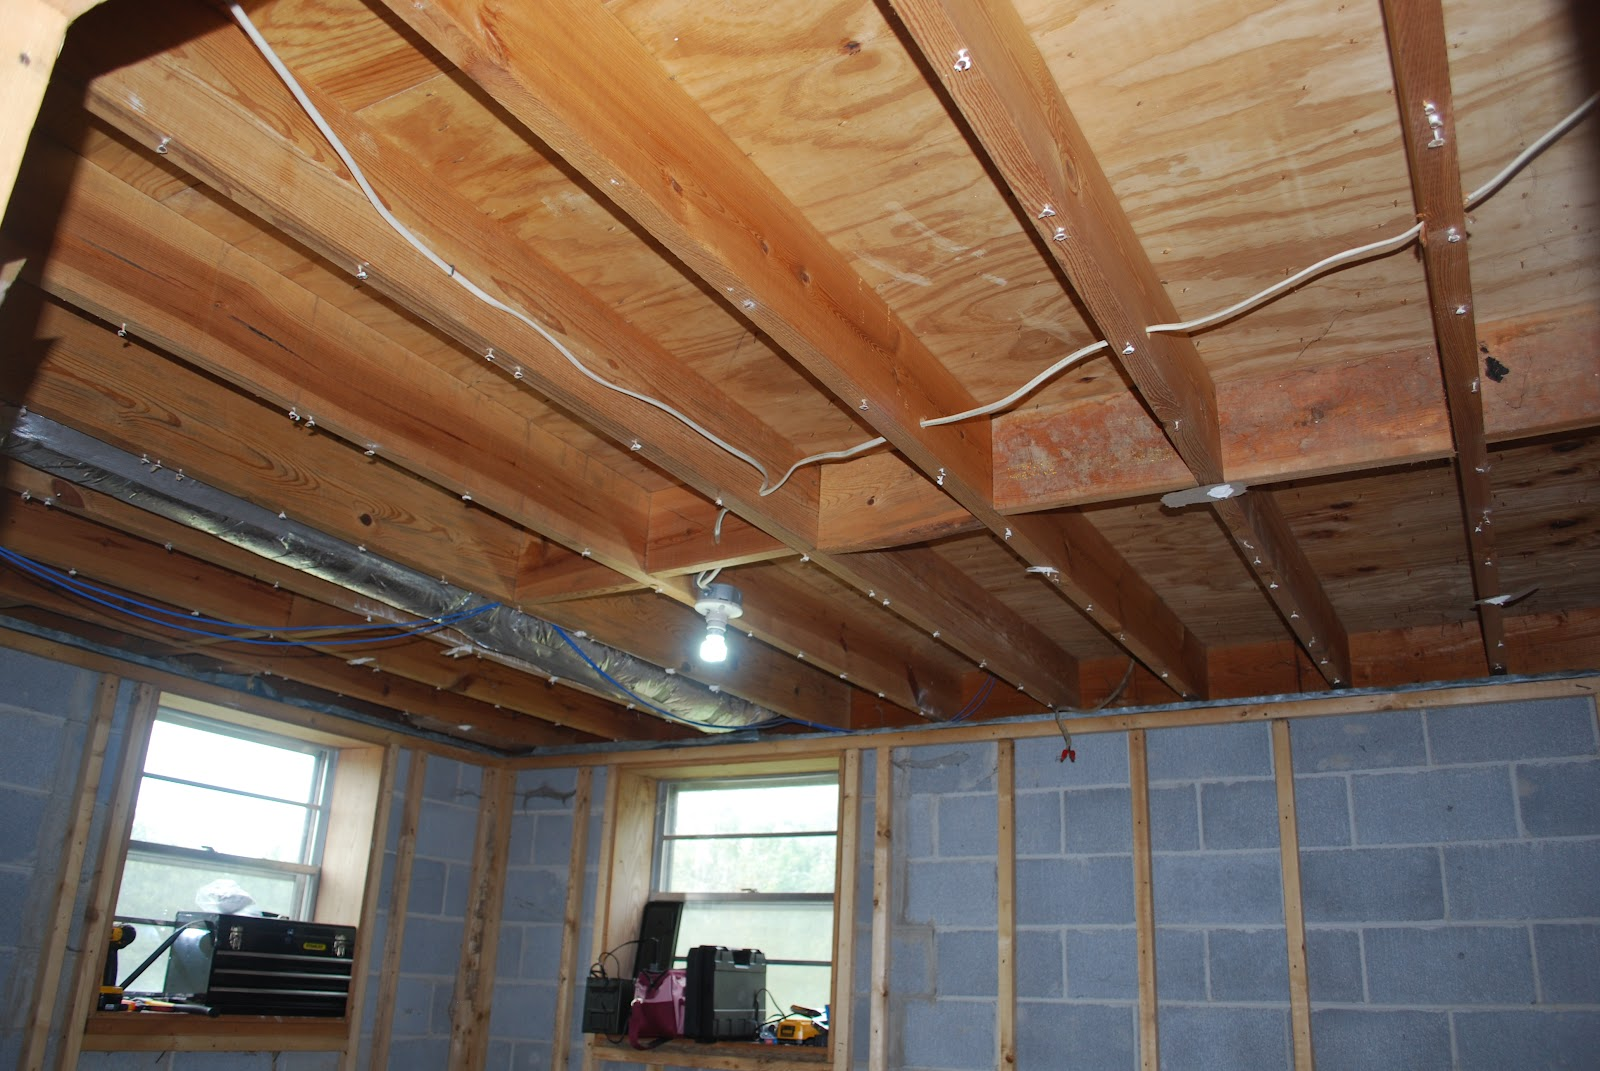 the ceiling and adding 4 can lights and possibly a ceiling fan